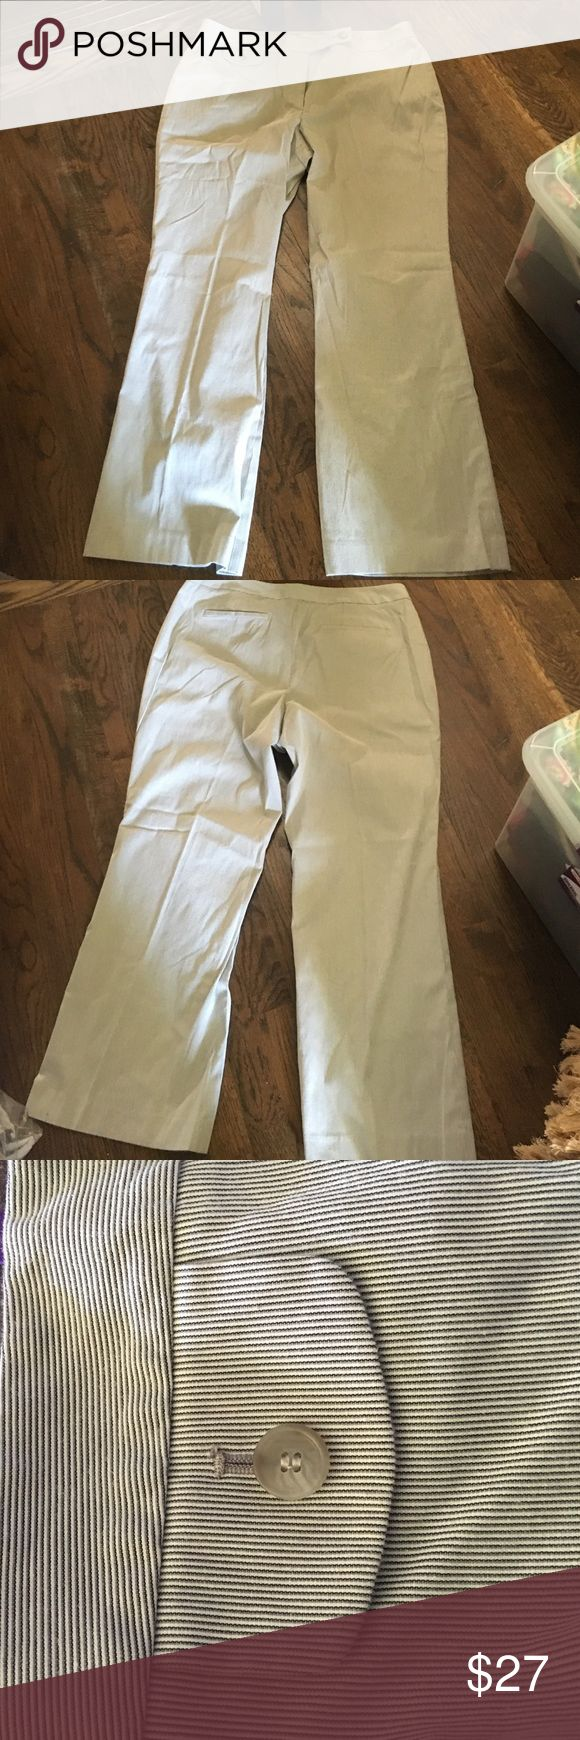 "Loft gray/white cotton pants Loft gray and white cotton pants. Front zipper and pickets on back. Not lined in great condition. 29"" inseam LOFT Pants"